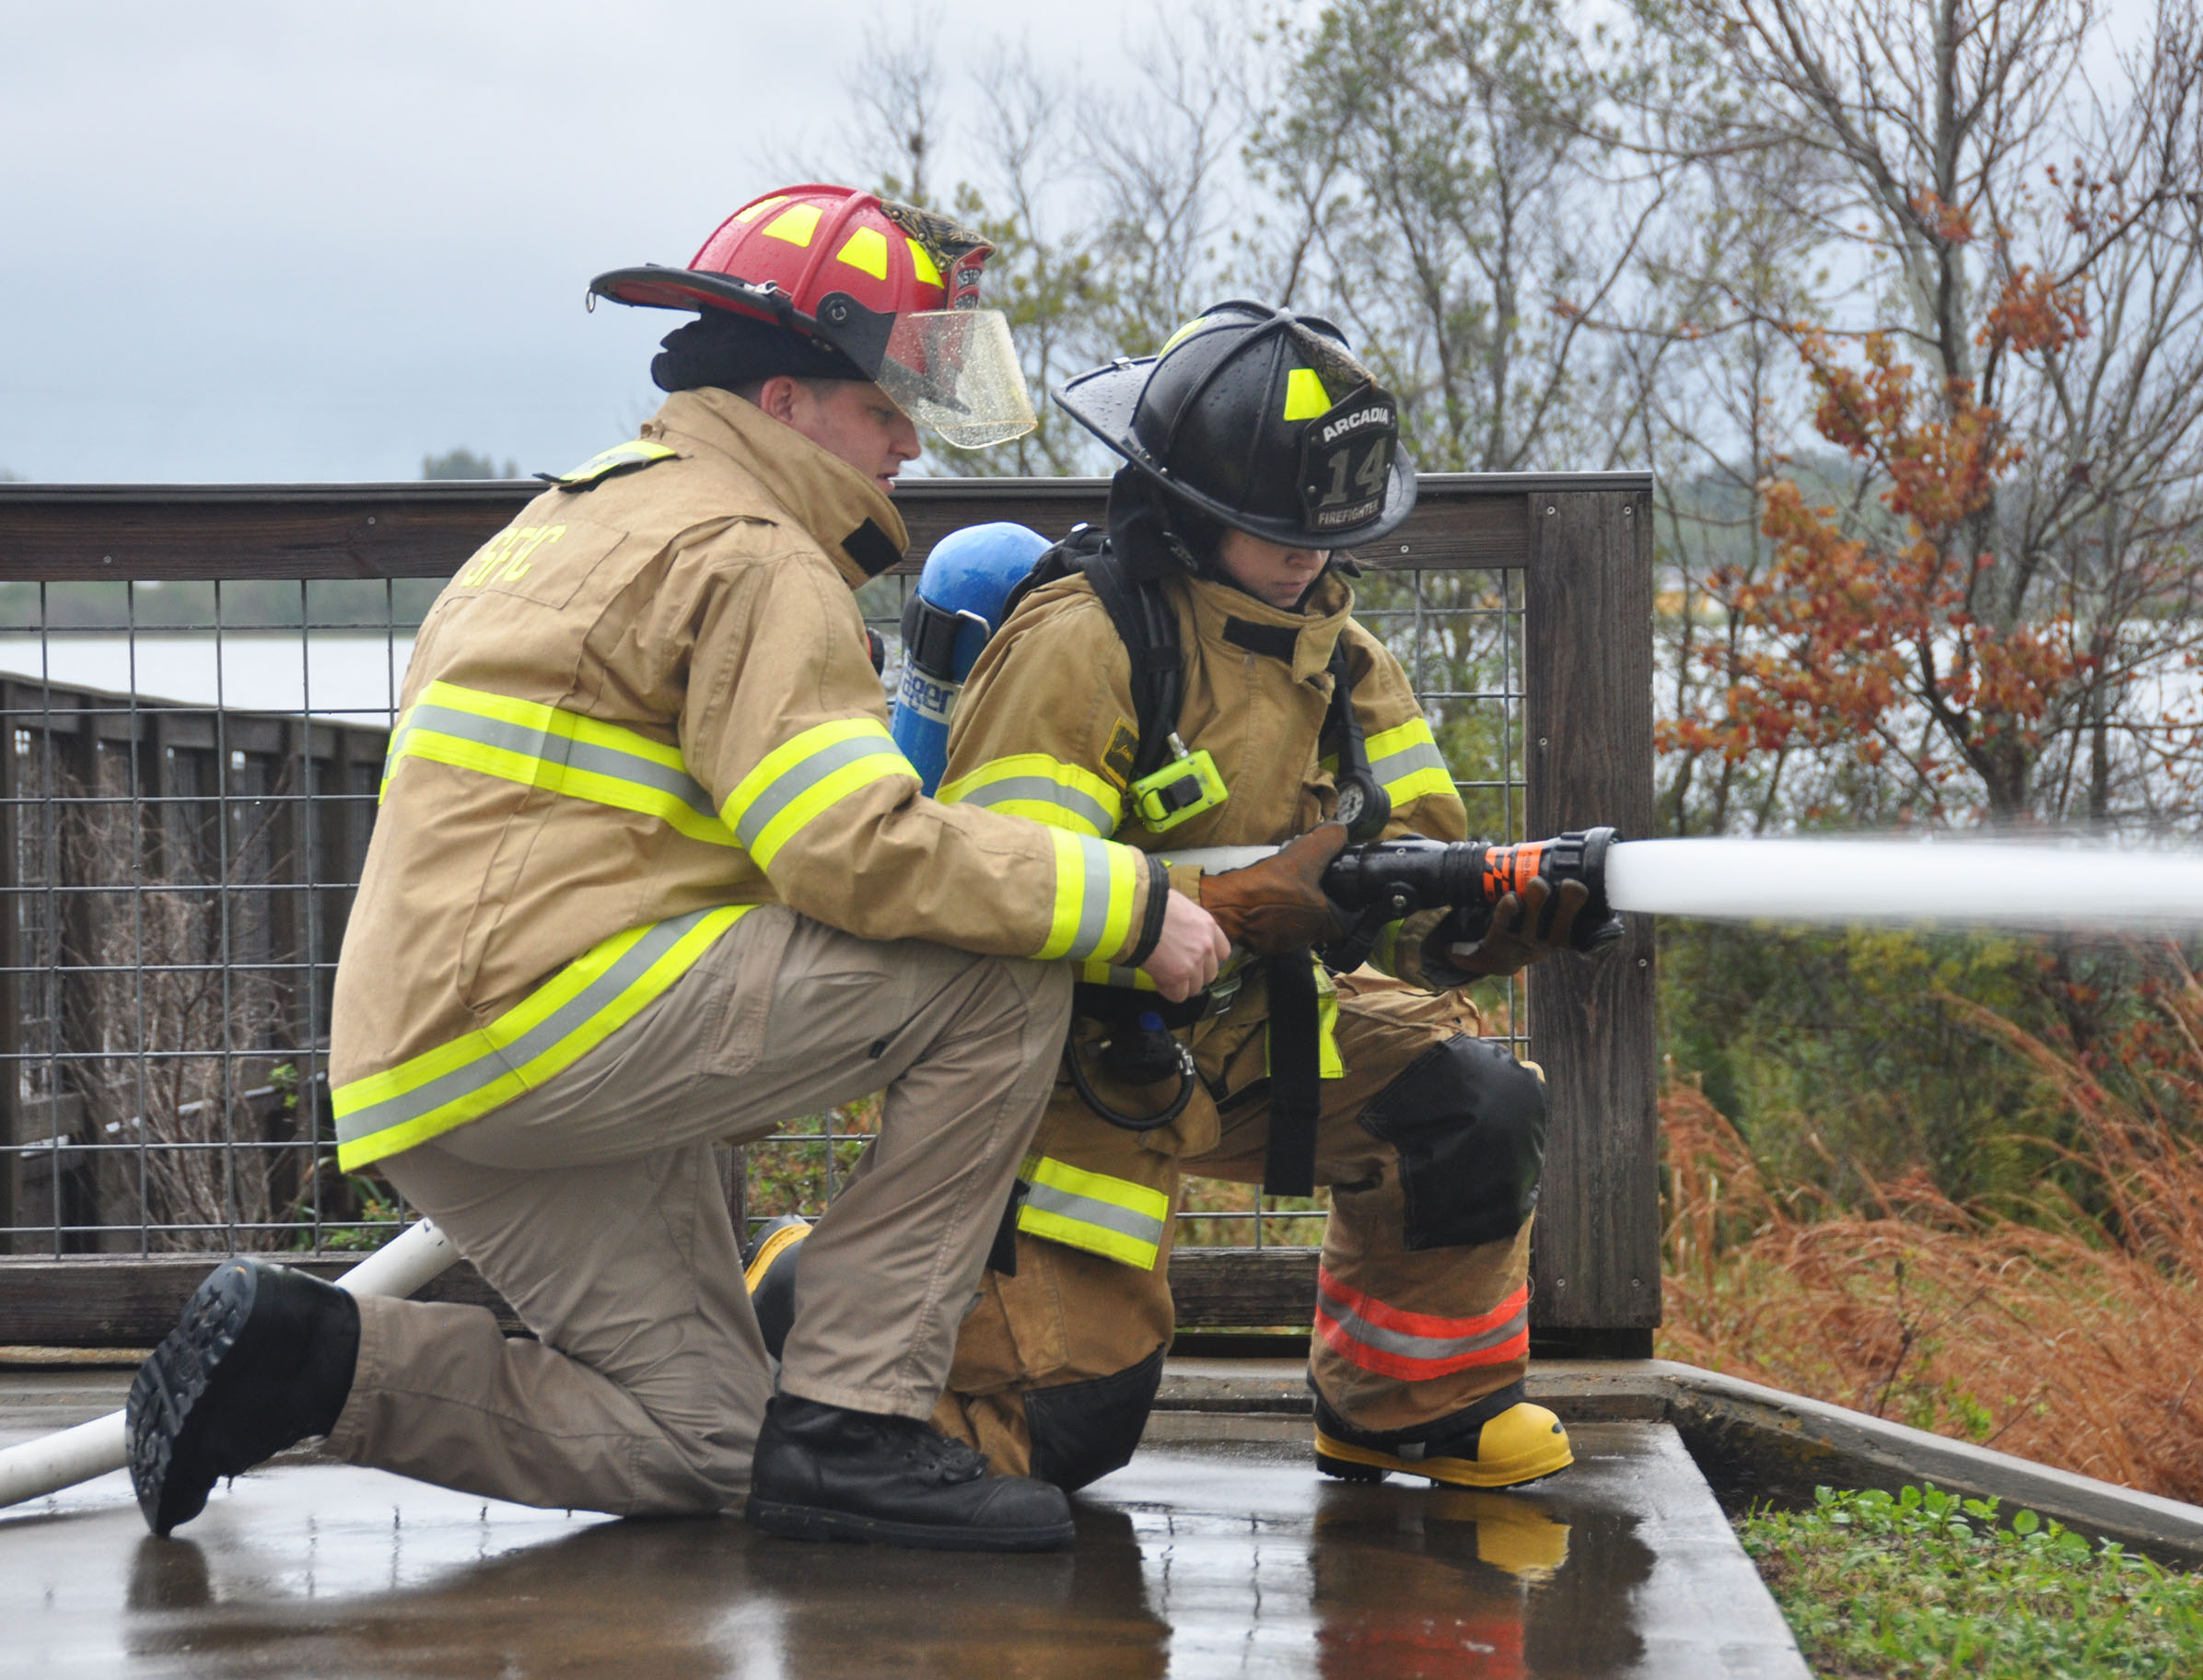 sfsc launches firefighting program south florida state college rh southflorida edu S 131 Instructor Guide Assistant Instructor Guide and Template